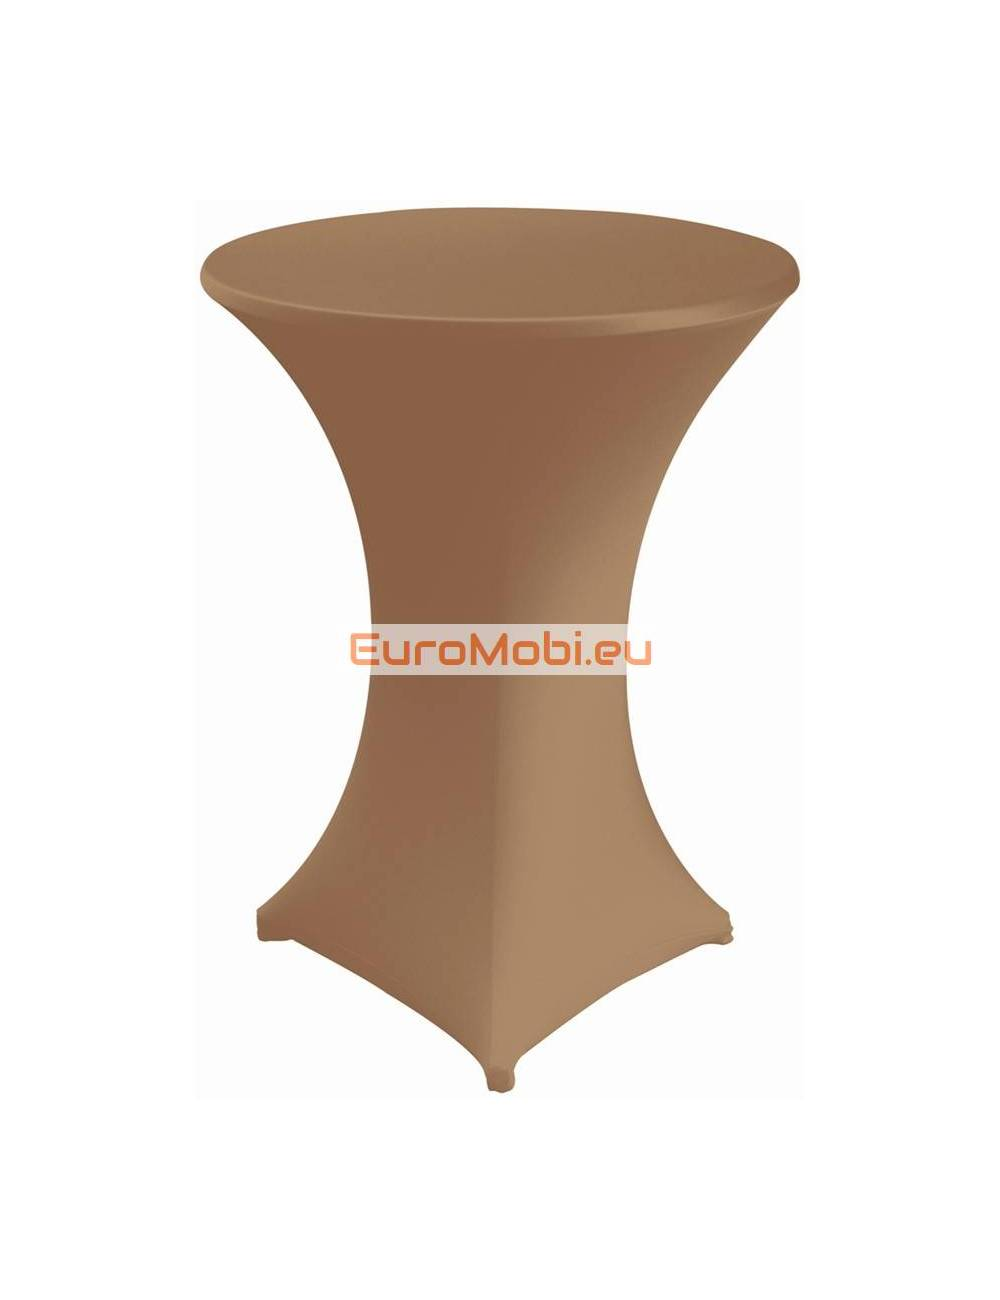 Cover and top stretch for standing table round brown